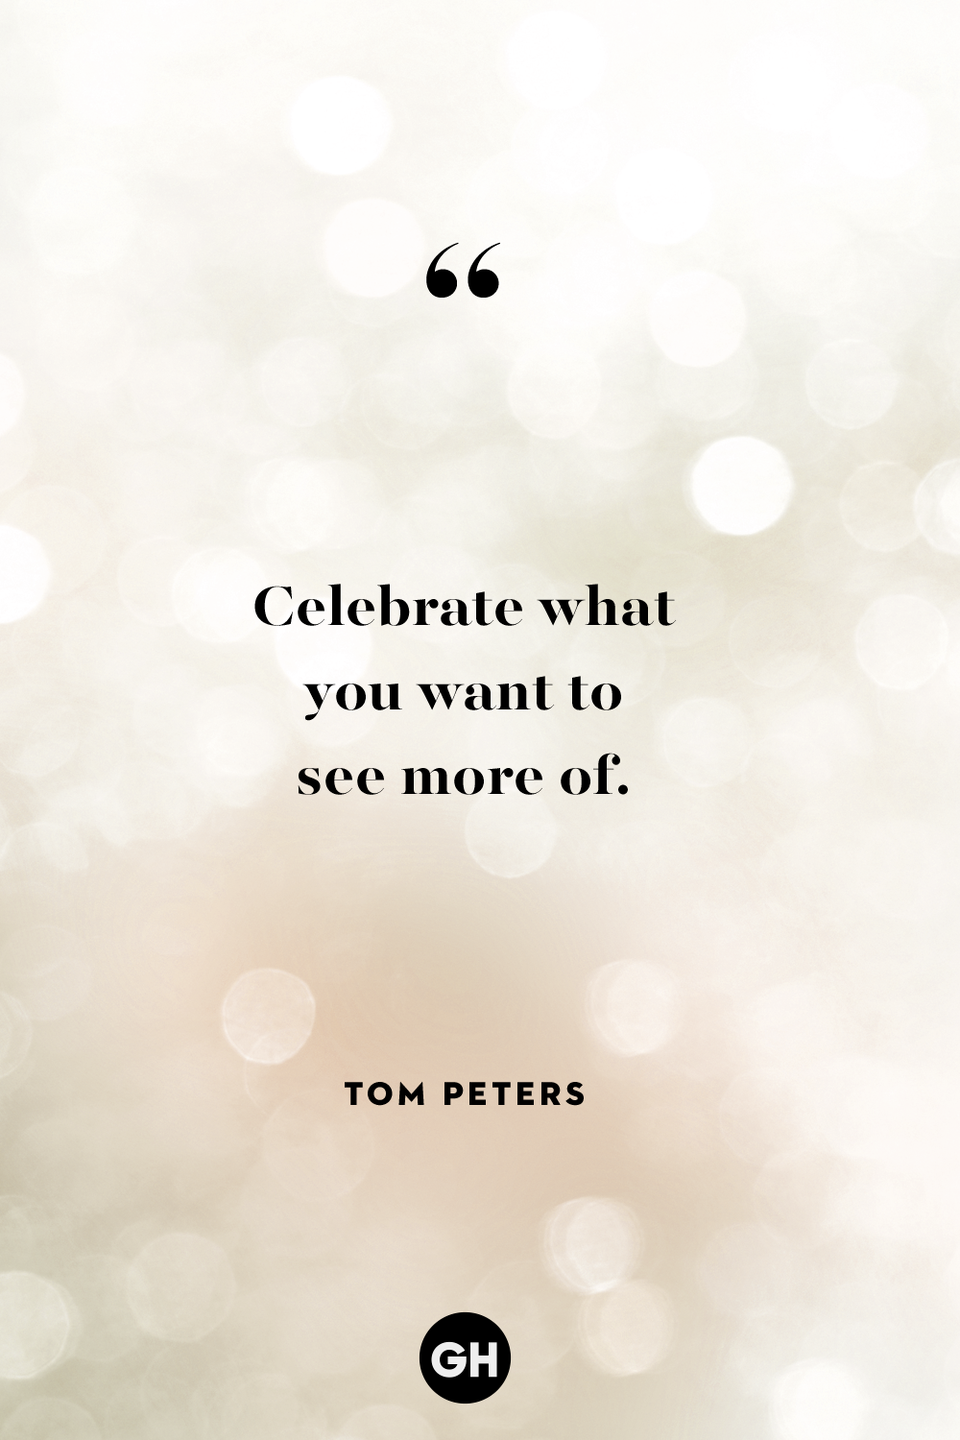 <p>Celebrate what you want to see more of.</p>